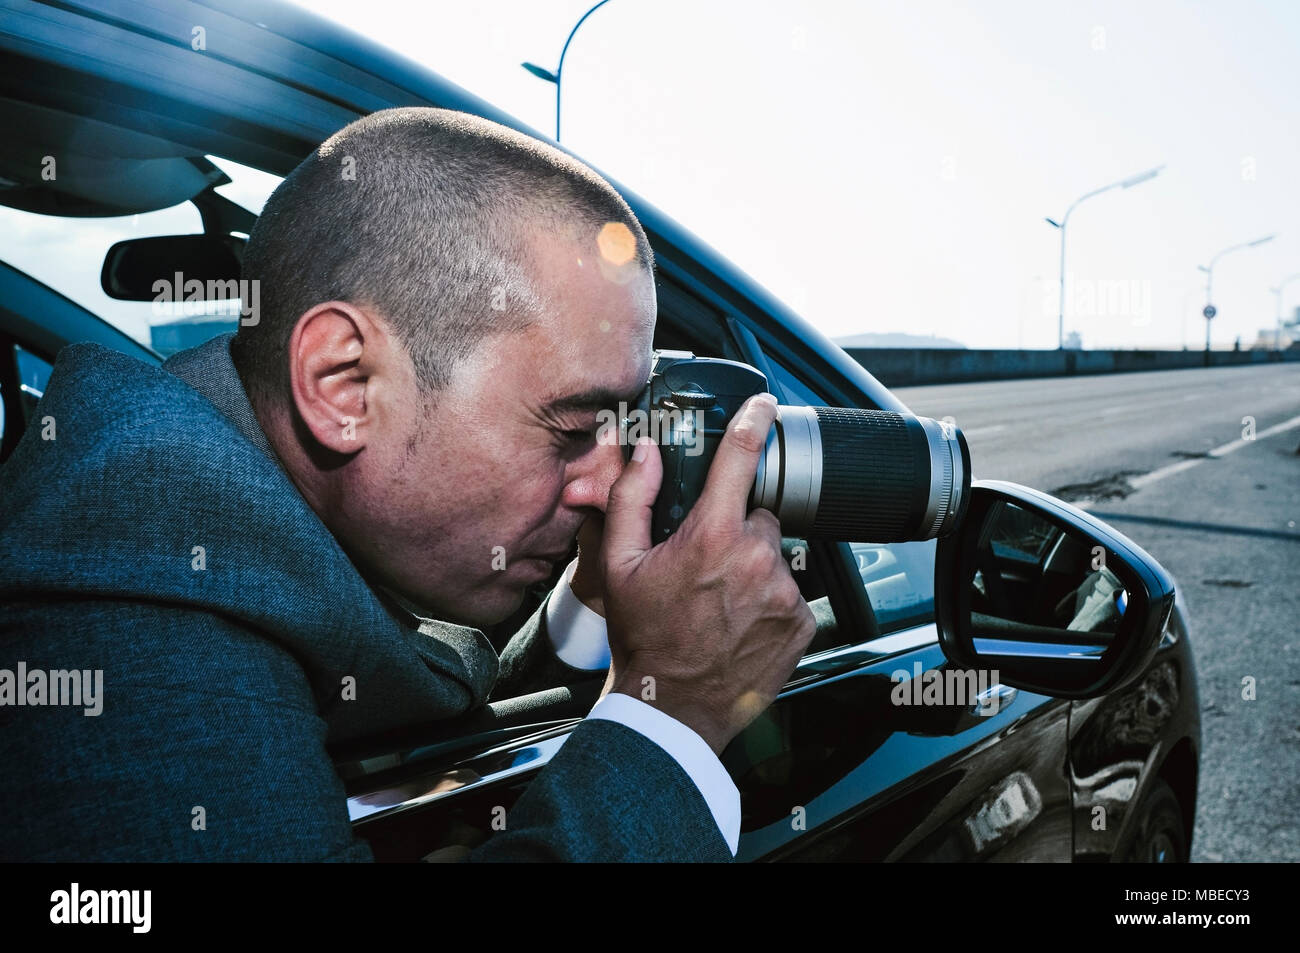 closeup of a young caucasian detective or paparazzi man, in a gray suit, taking photos from inside a car - Stock Image